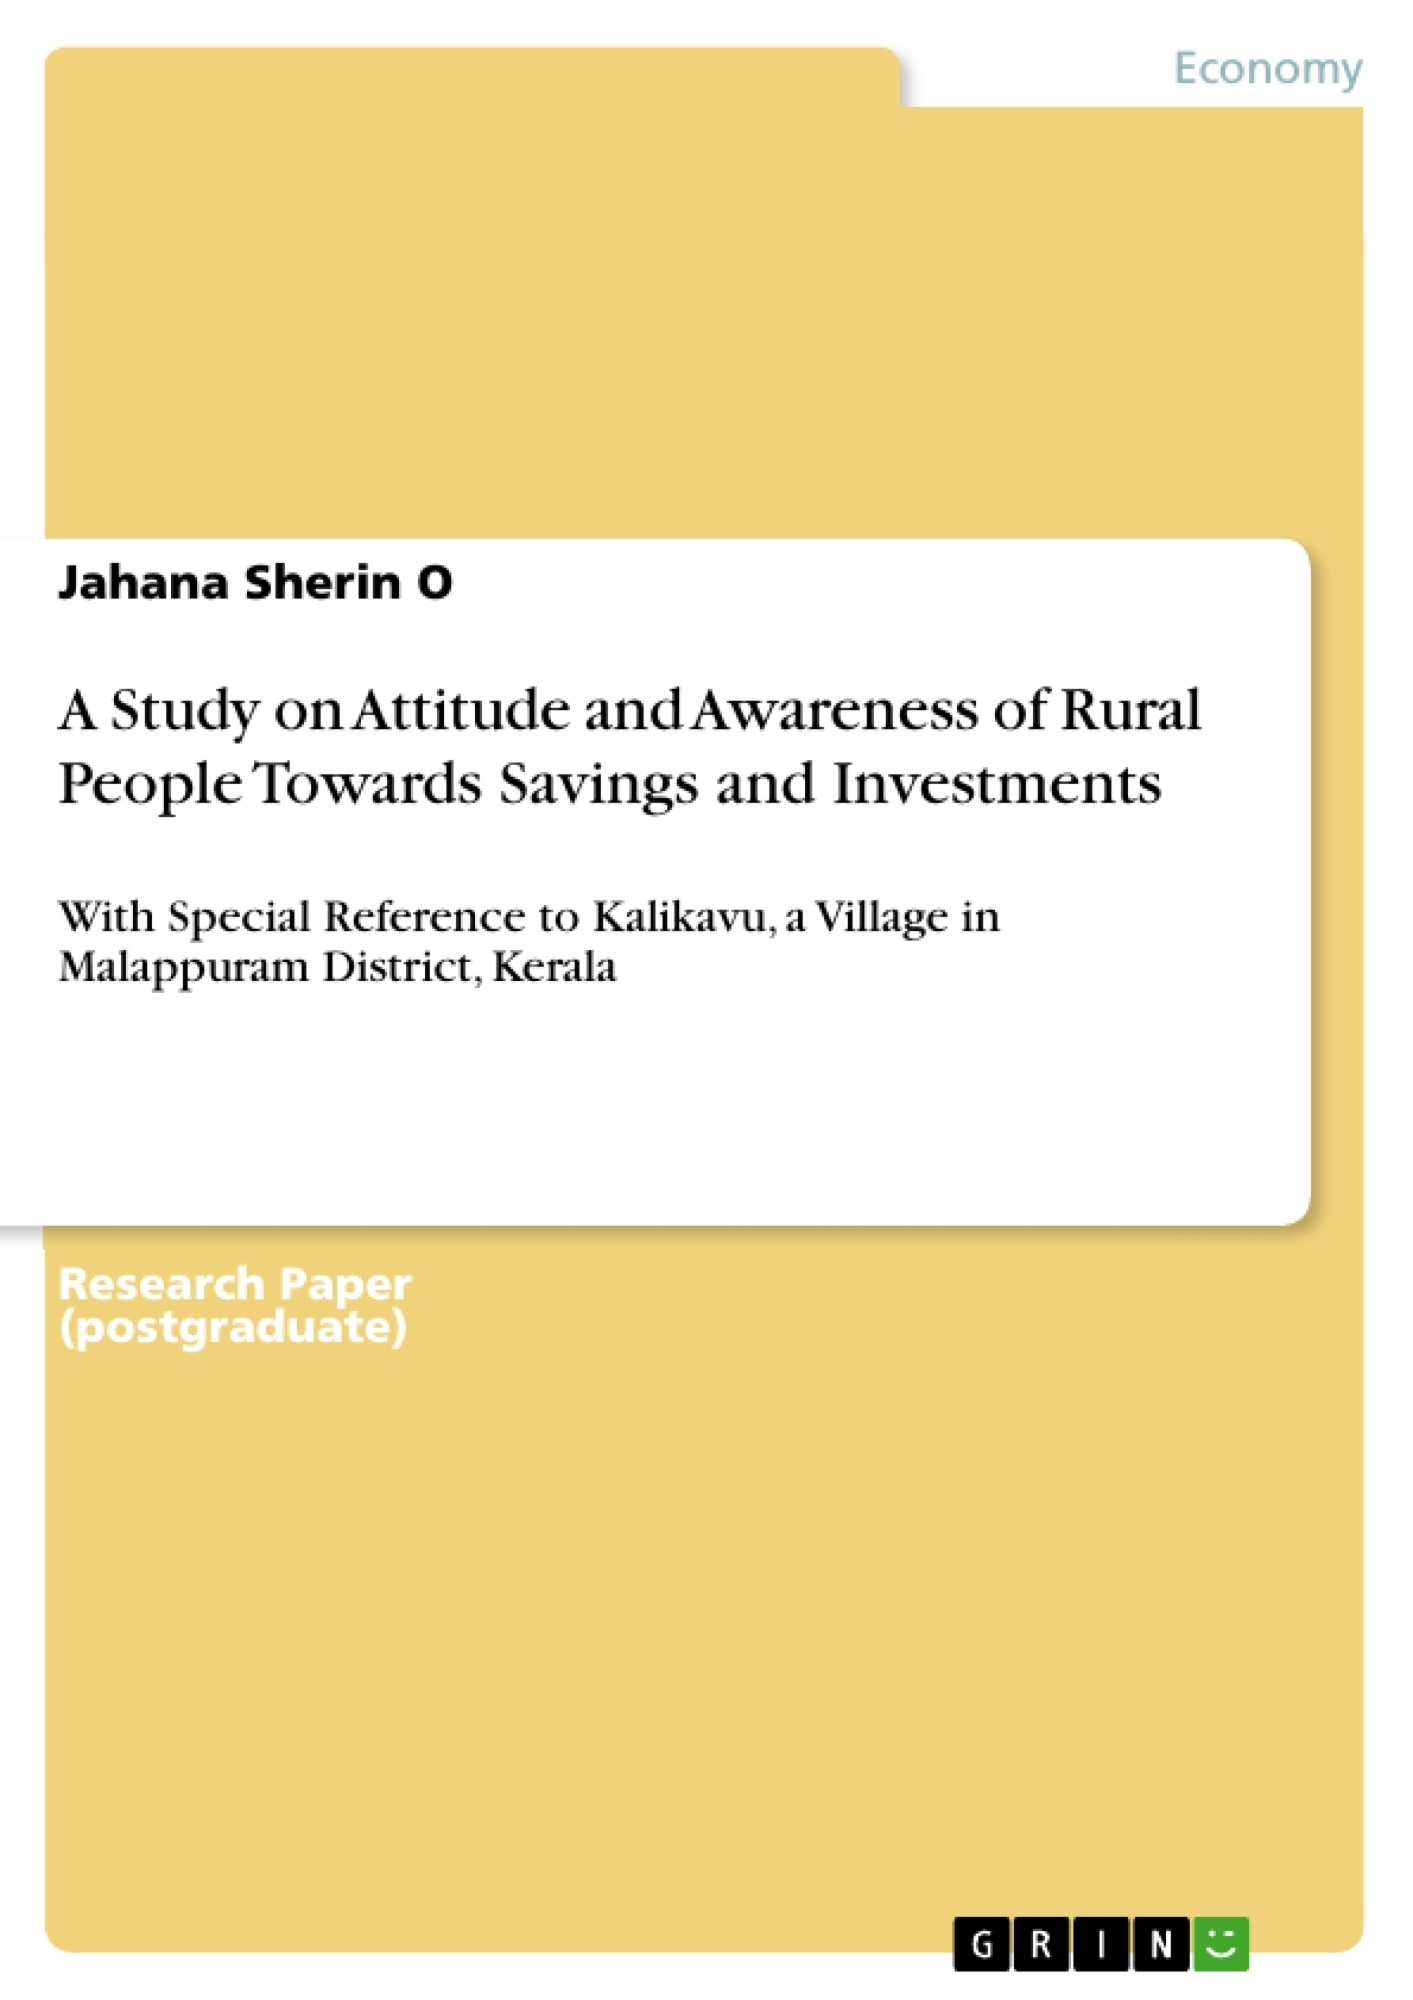 Title: A Study on Attitude and Awareness of Rural People Towards Savings and Investments